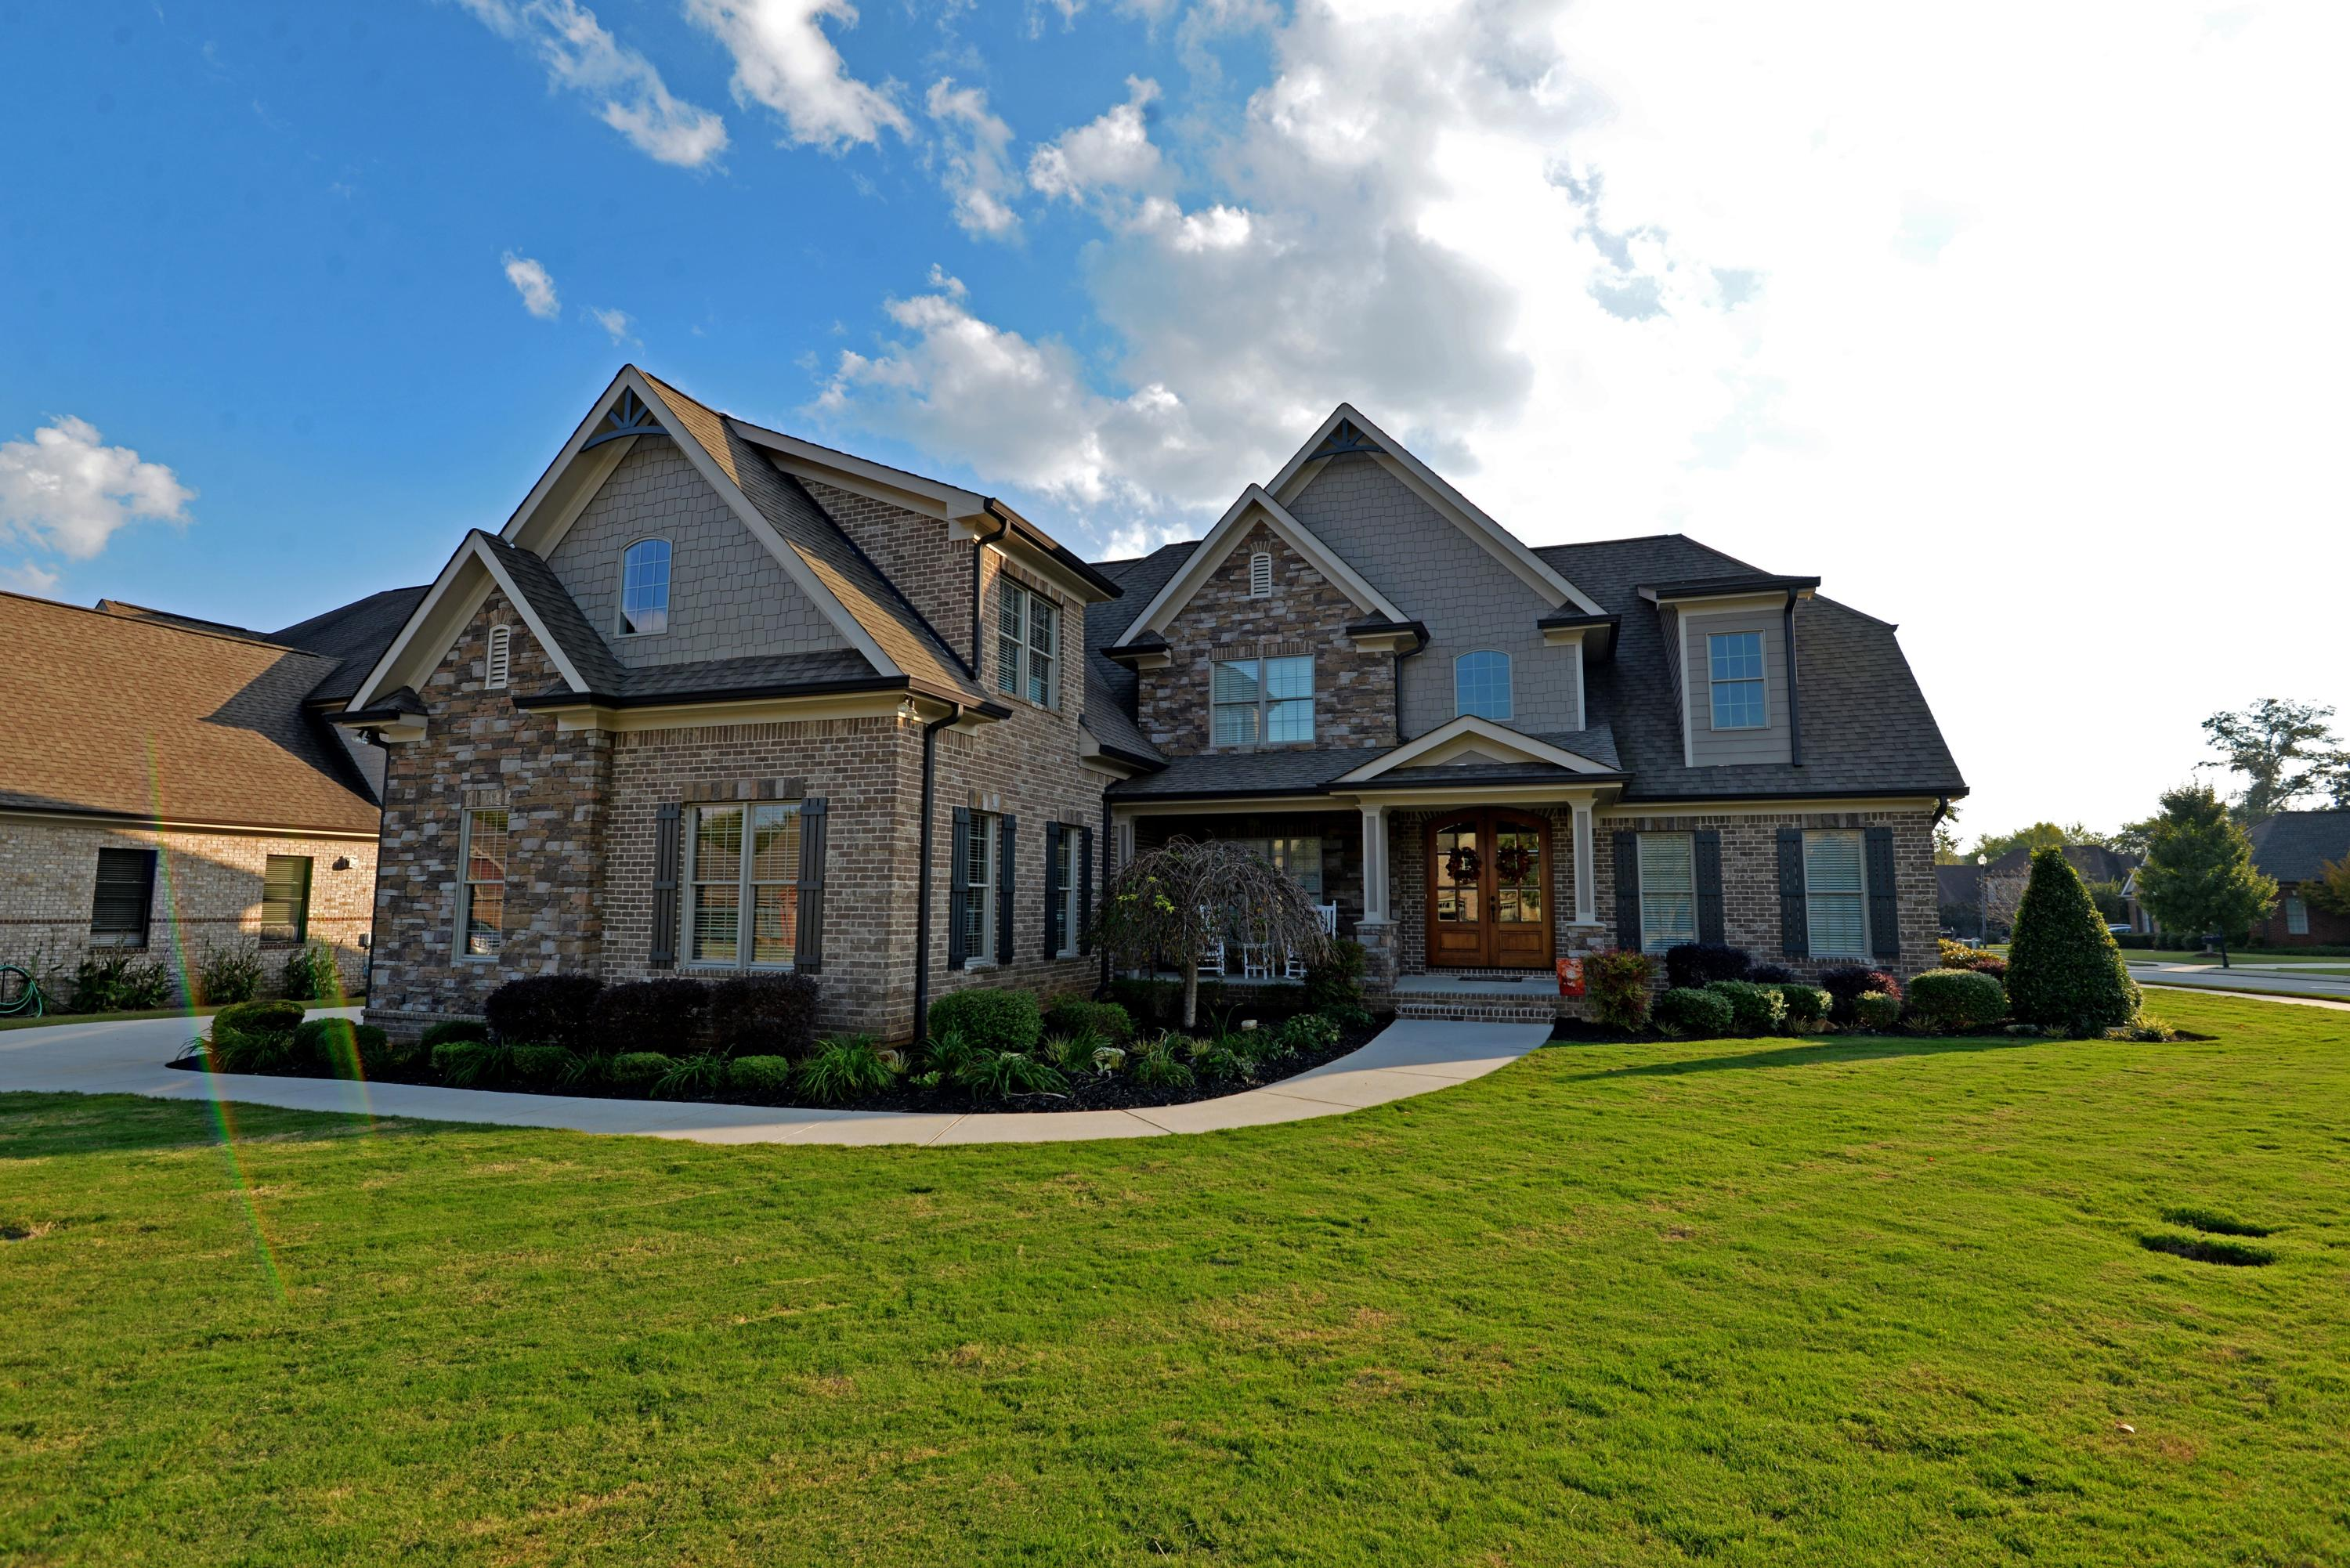 7948 Hampton Cove Dr, Ooltewah, TN 37363